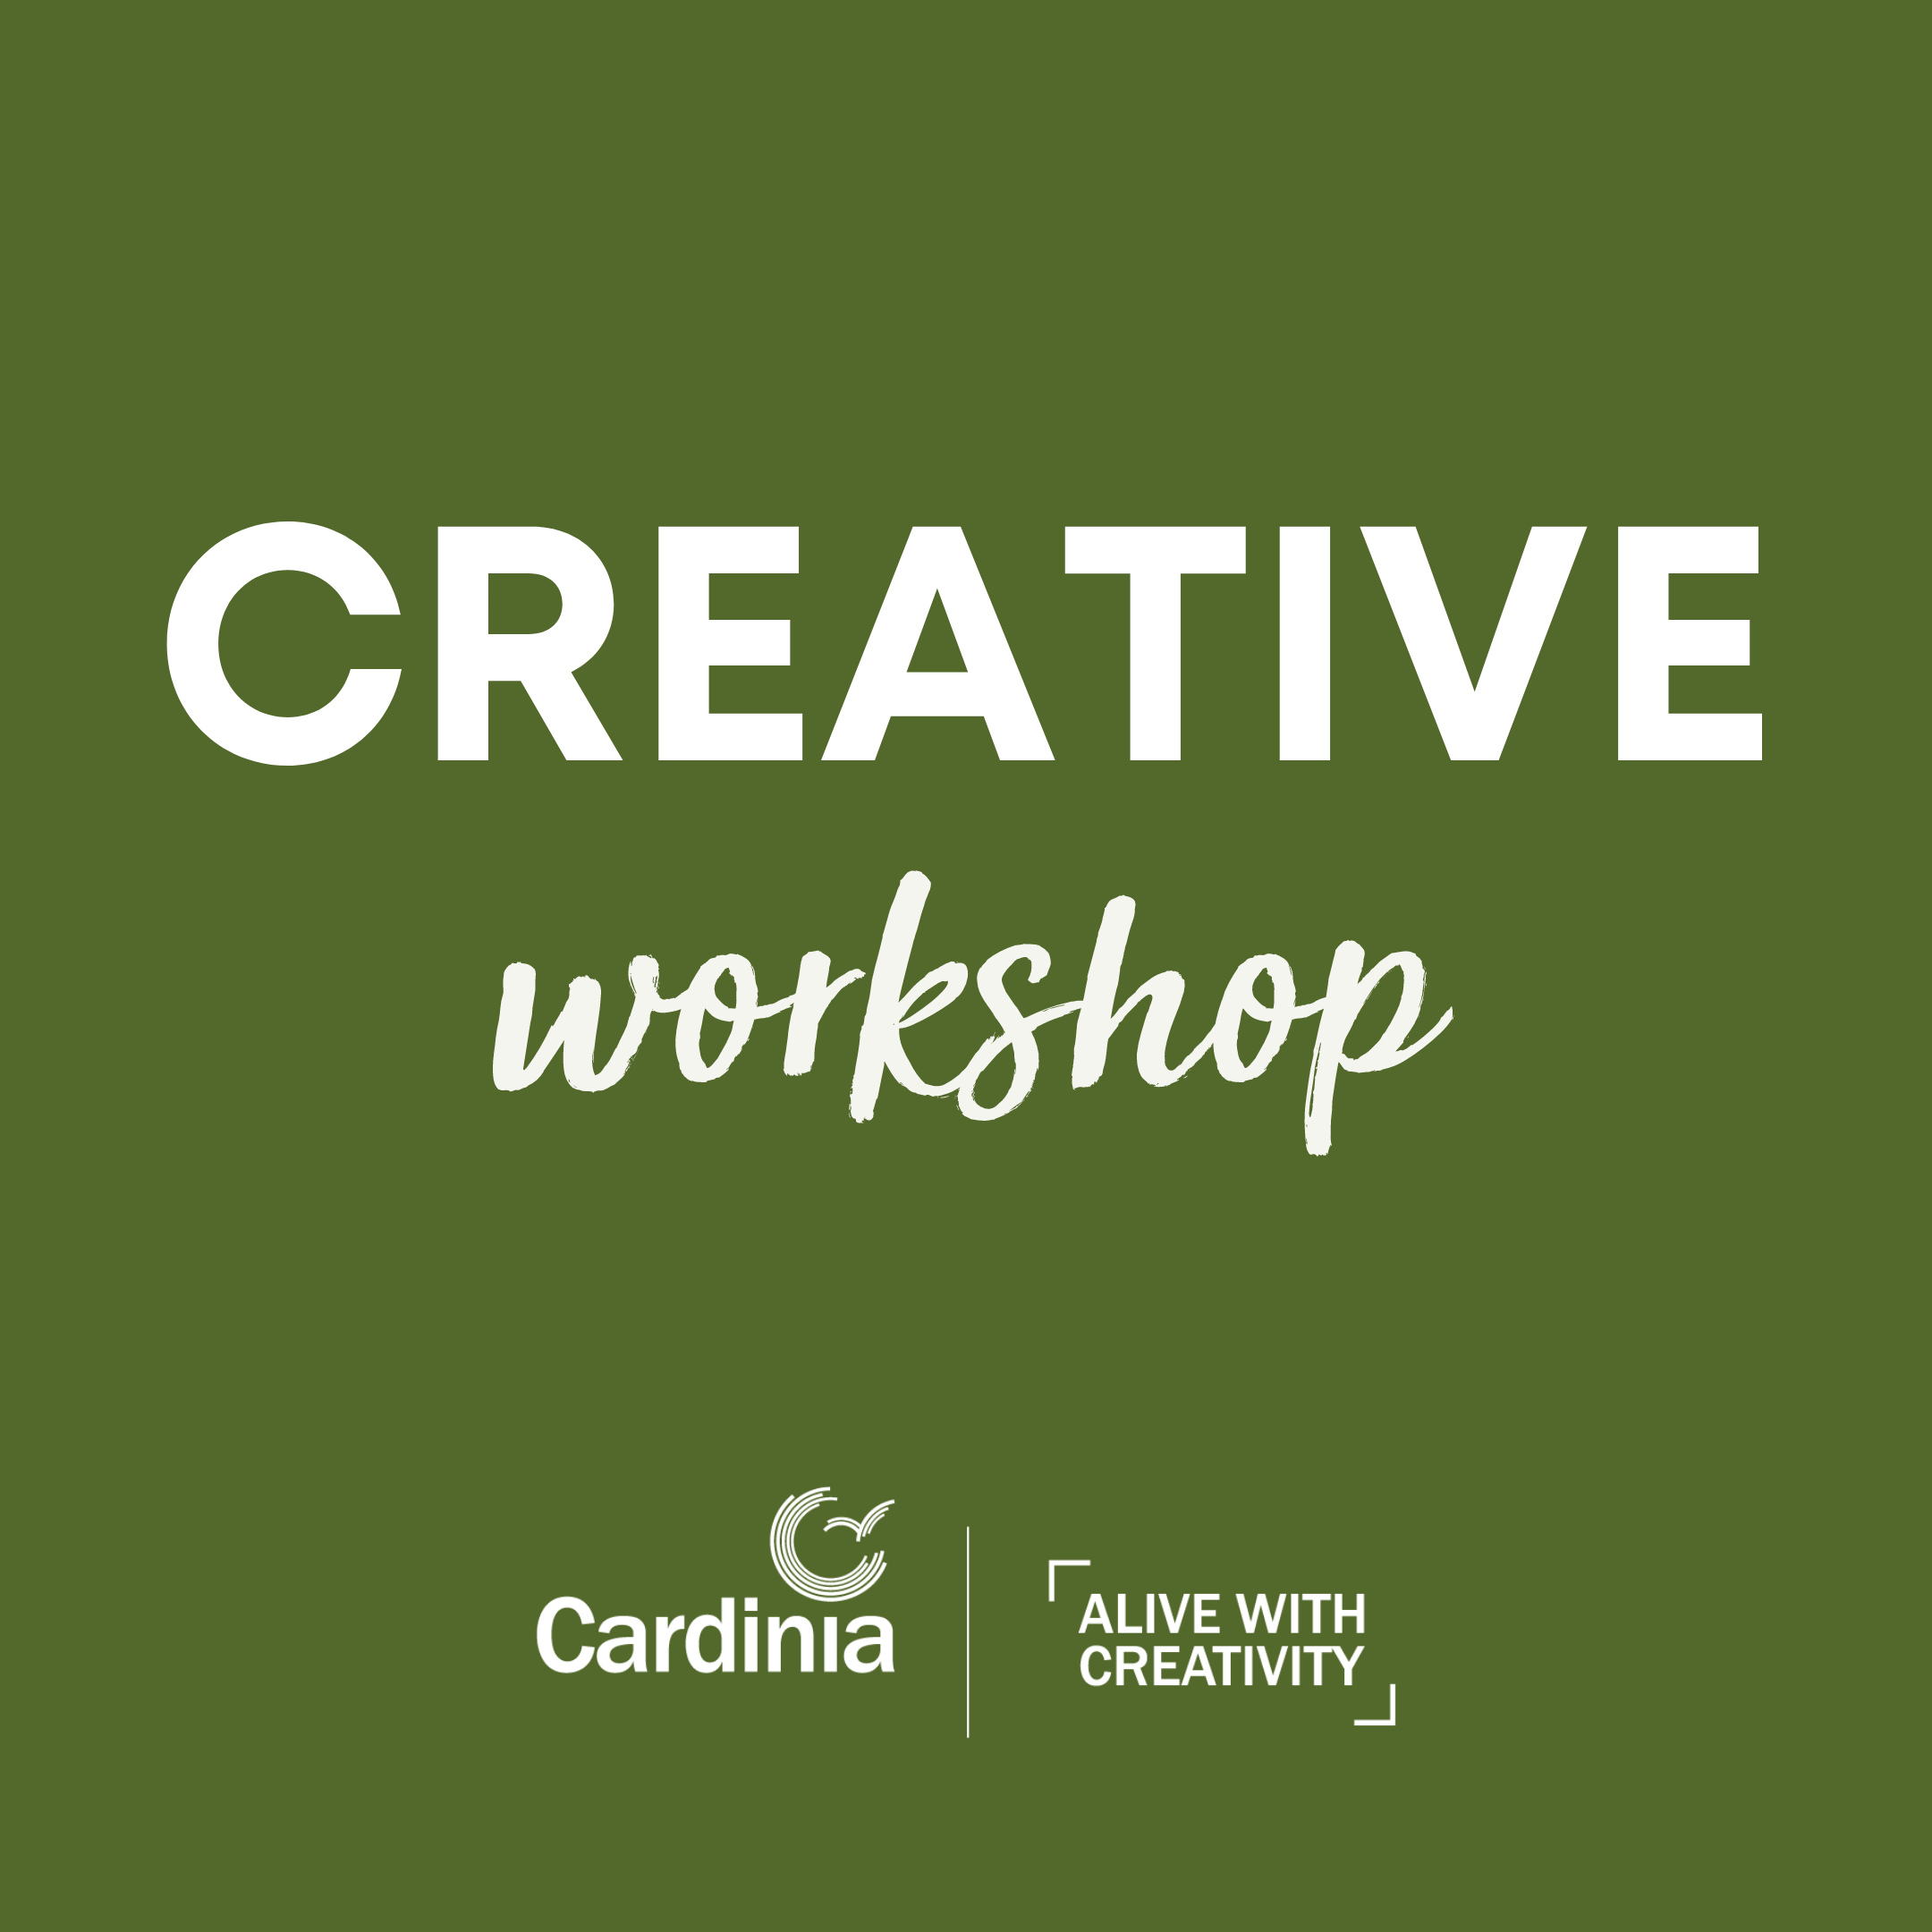 Creative and skills development workshops, delivered every Wednesday.